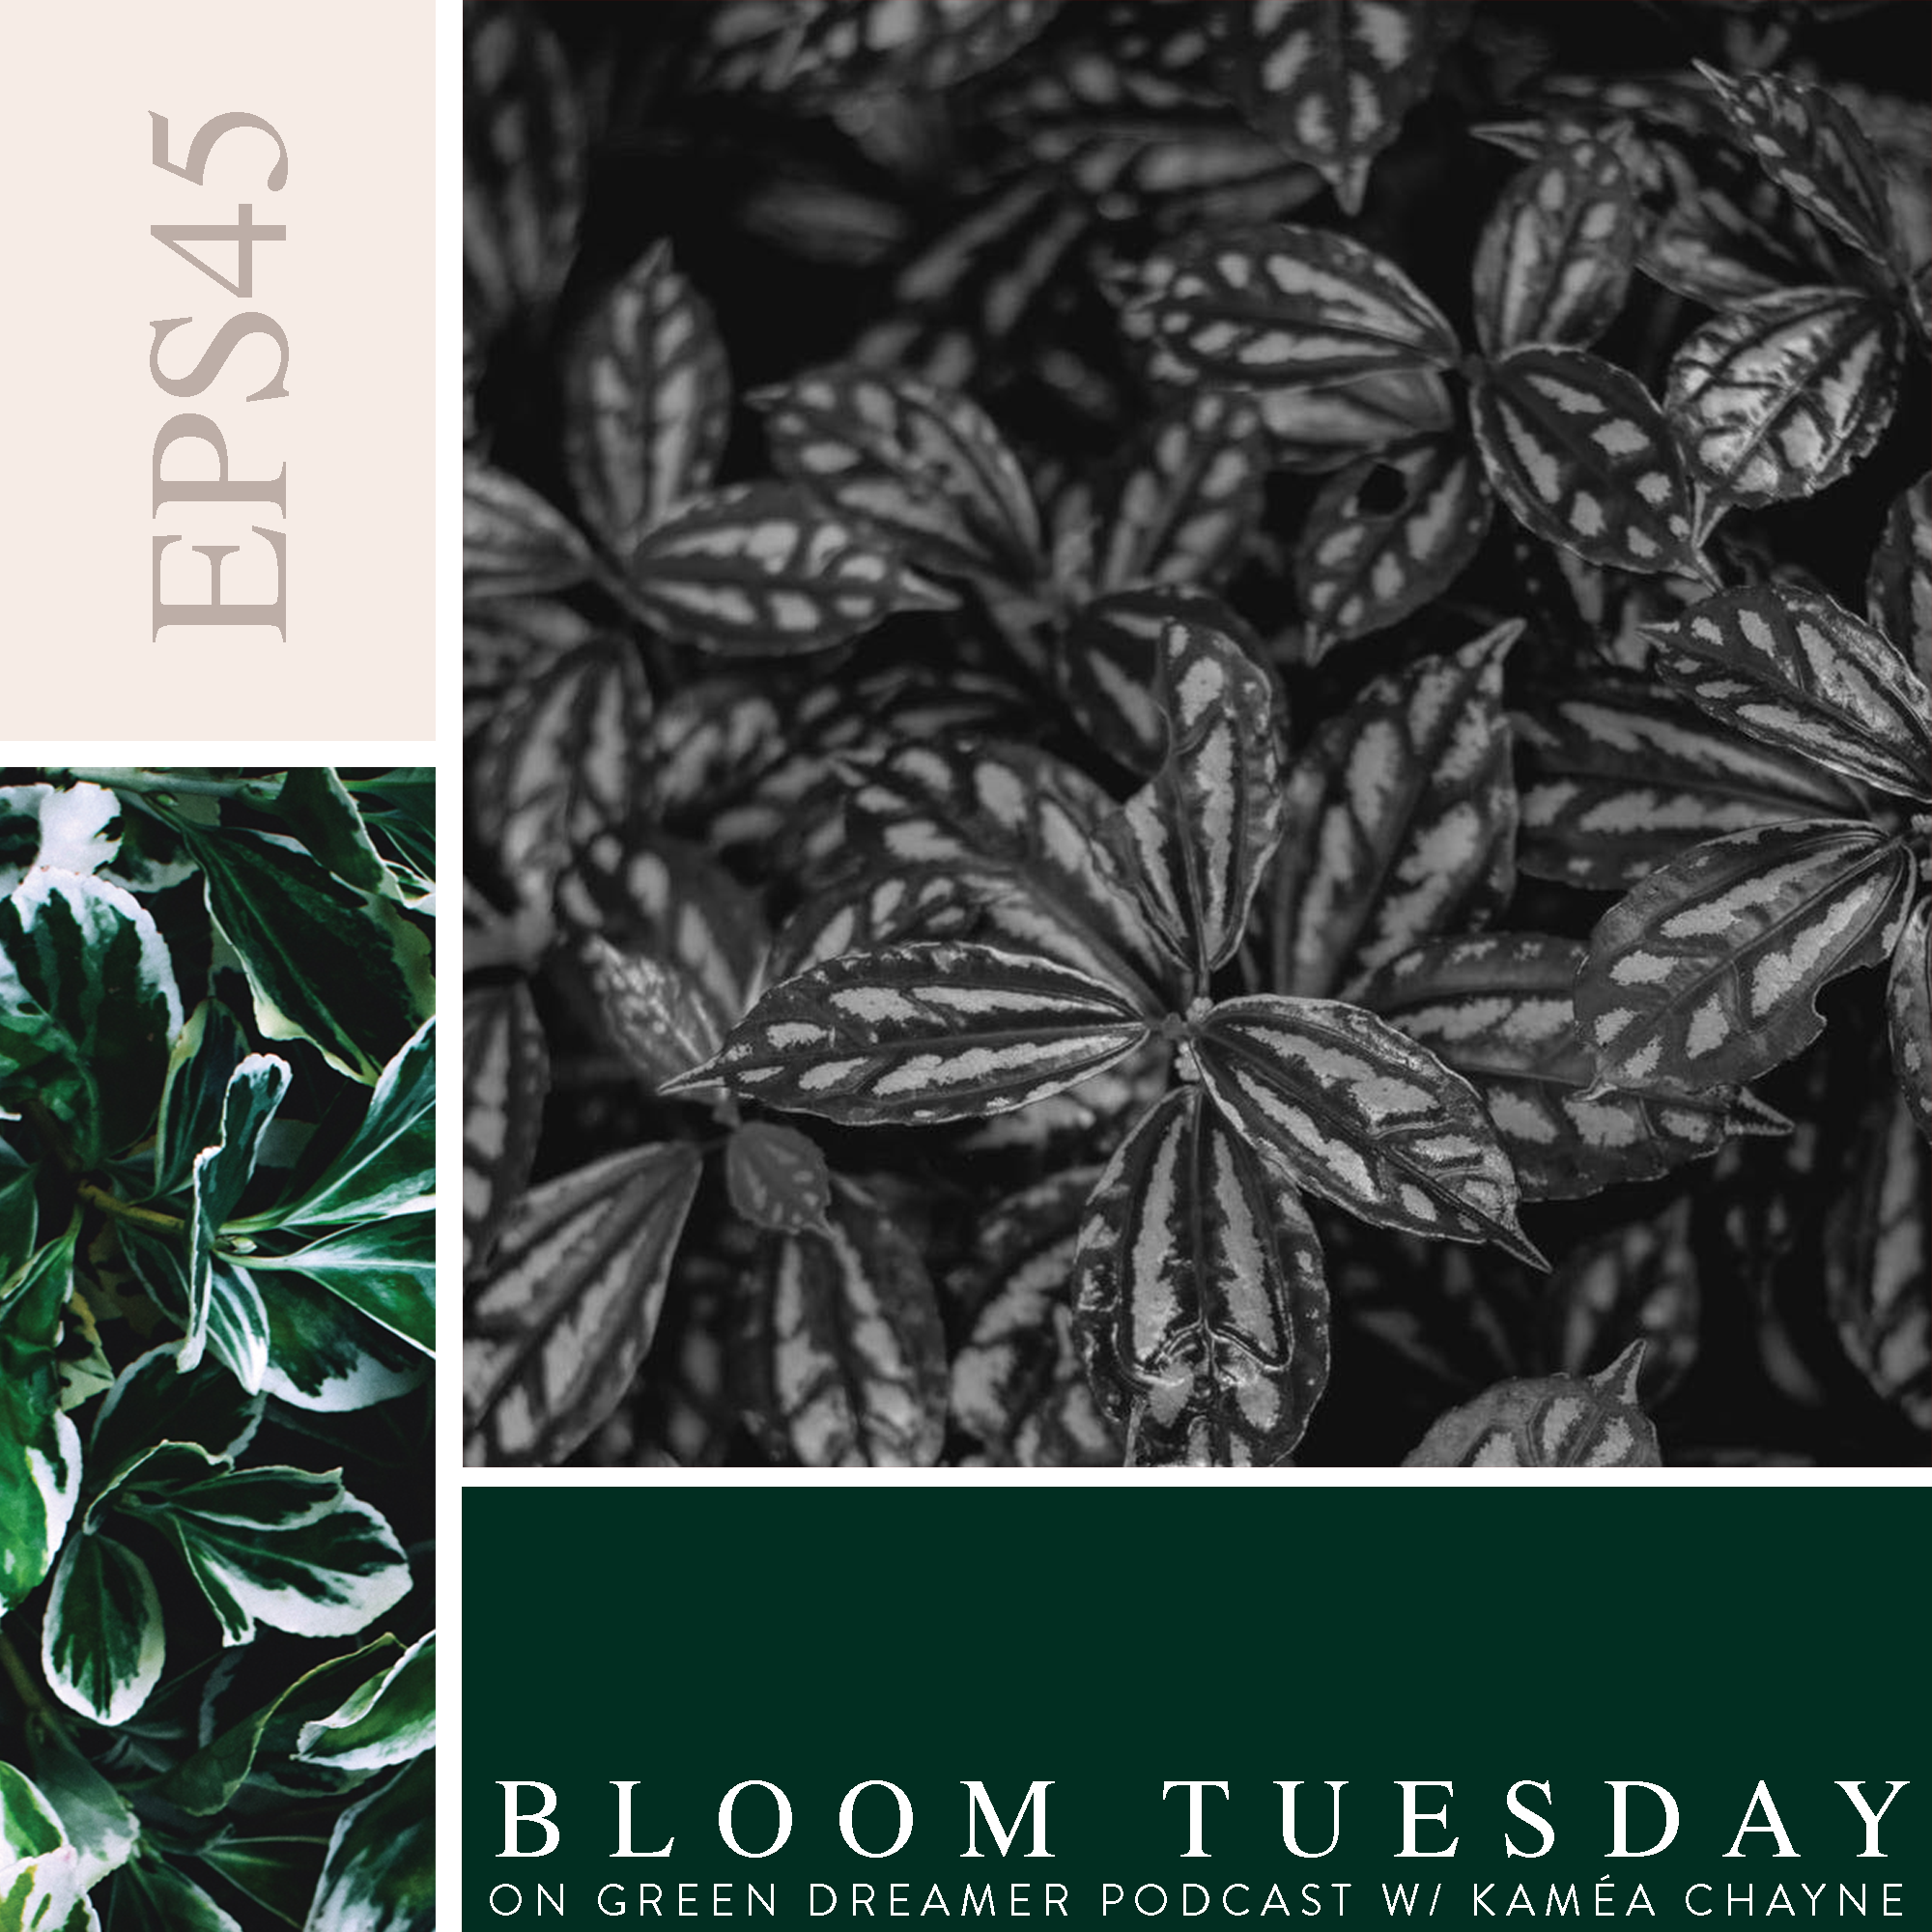 45) BLOOM TUESDAY